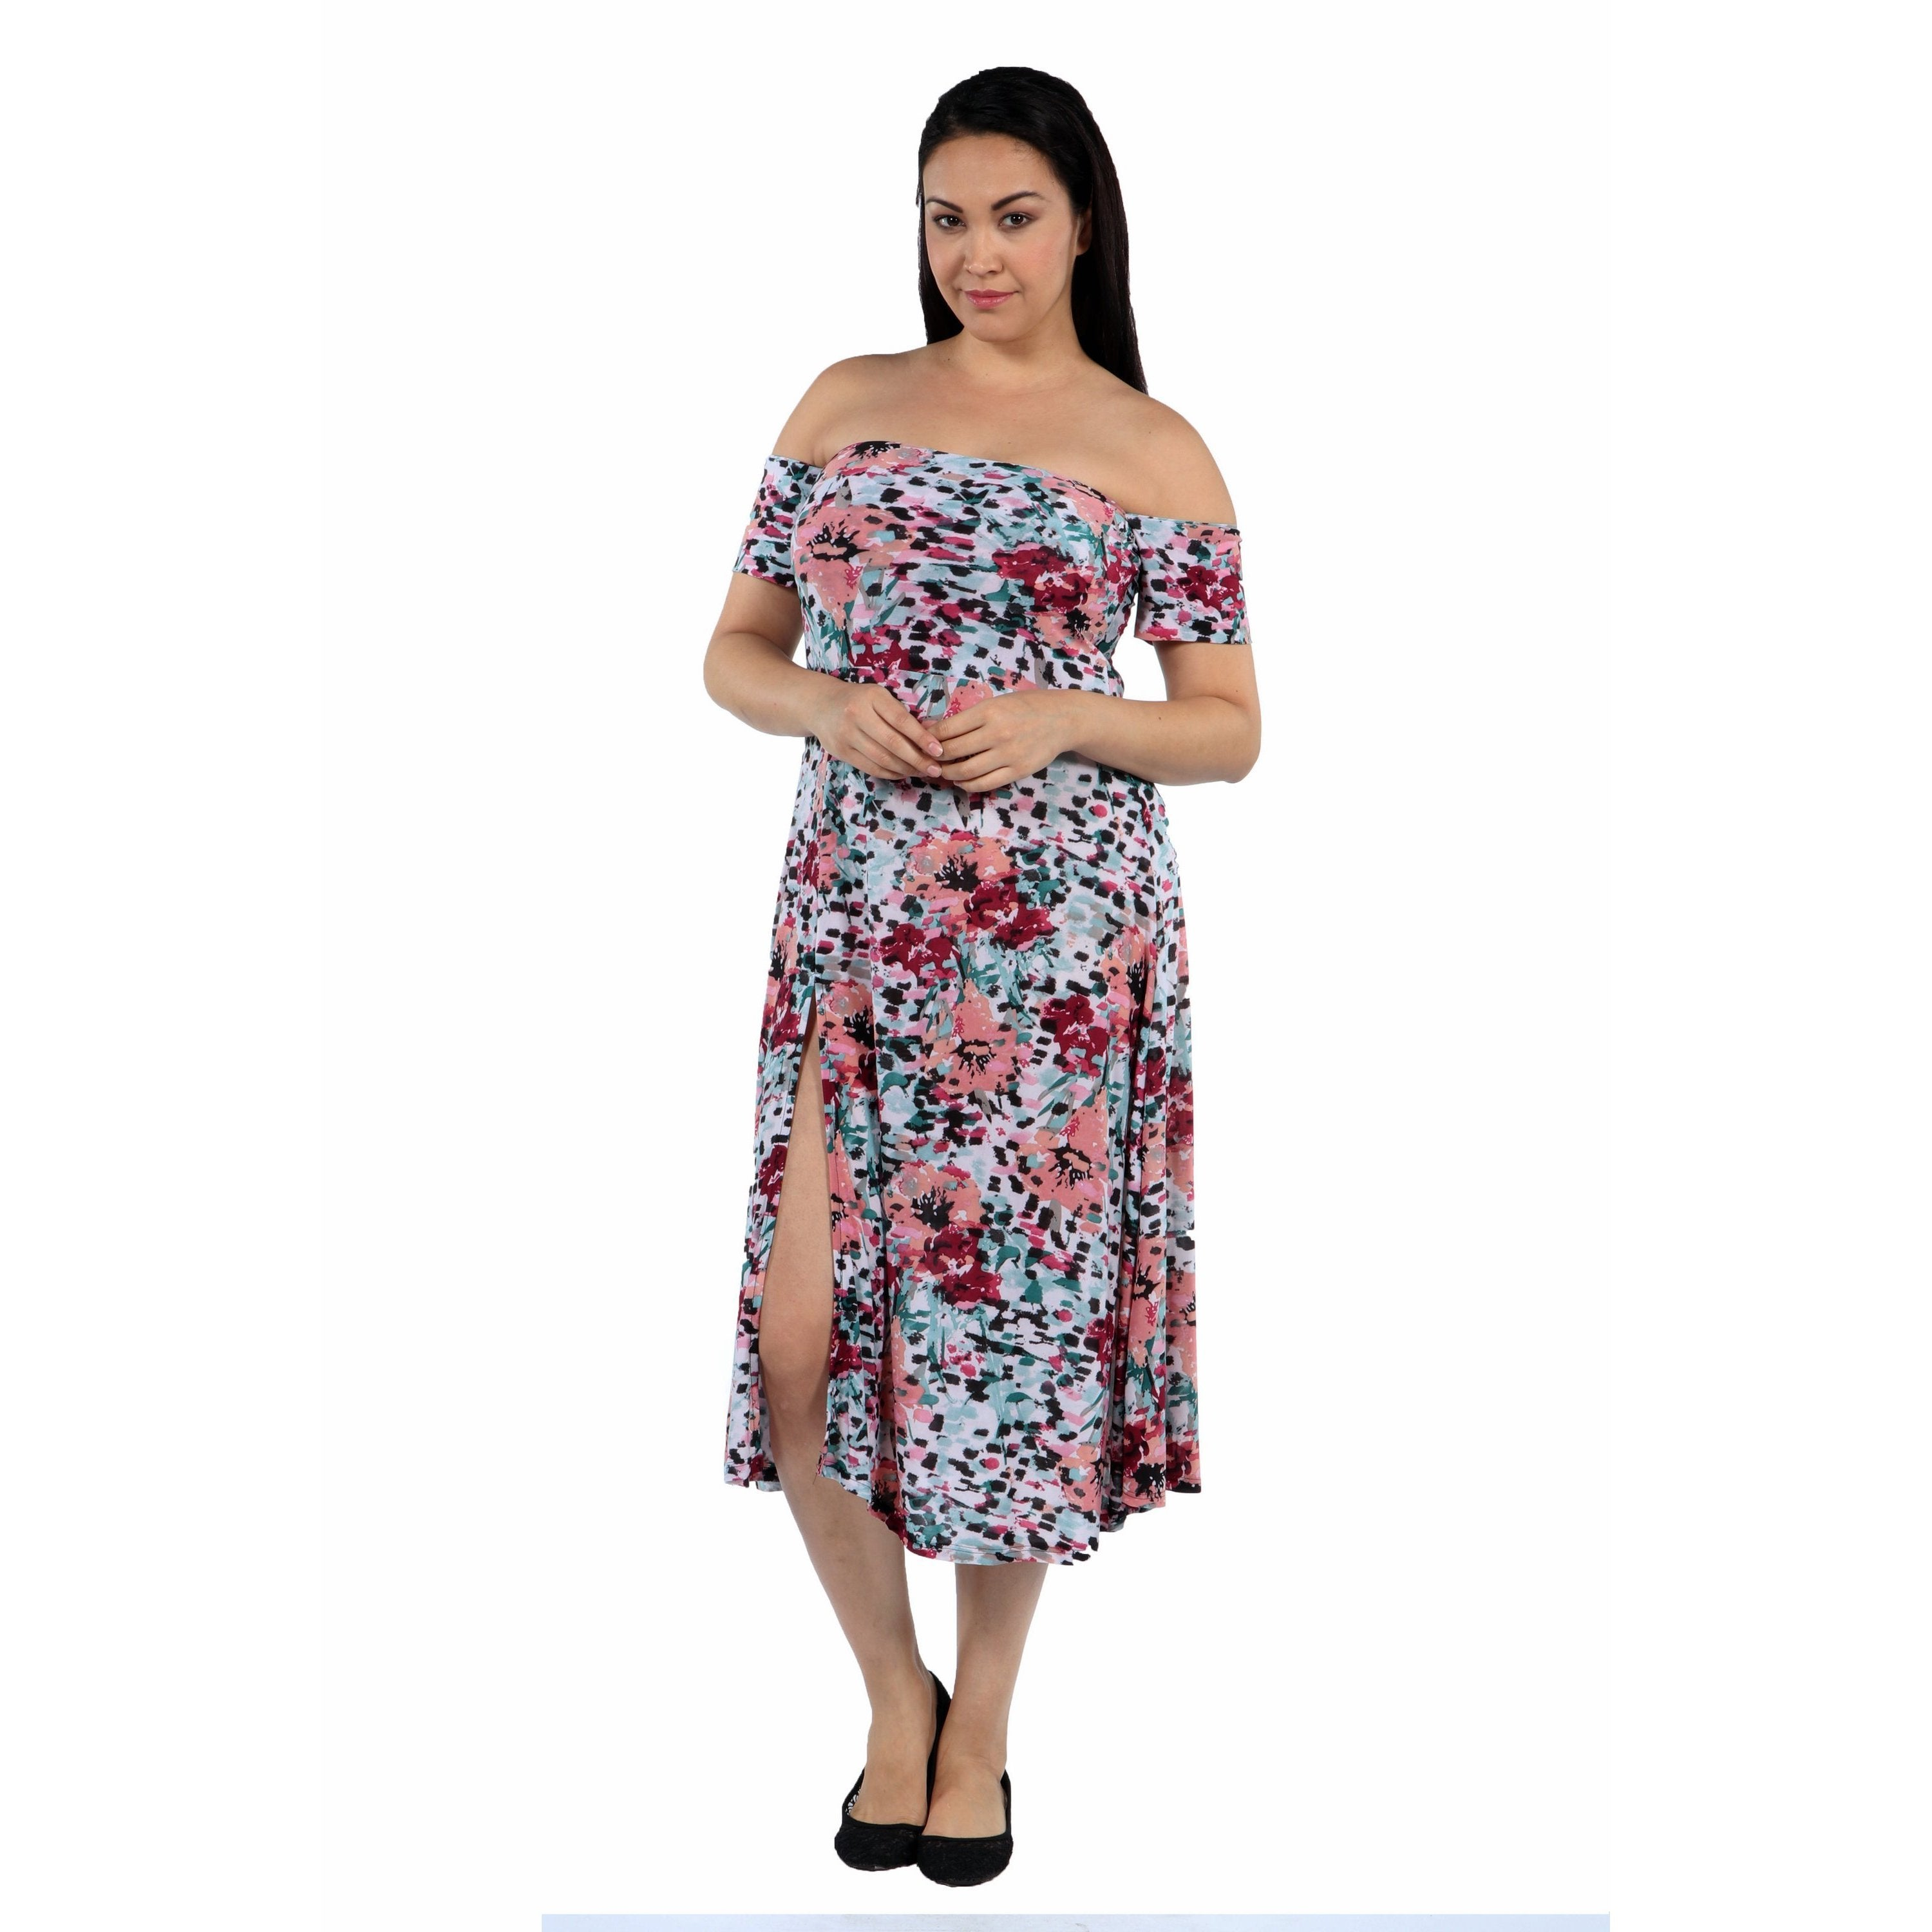 24/7 Comfort Apparel Angel Orchid Plus Size Dress (2X), W...